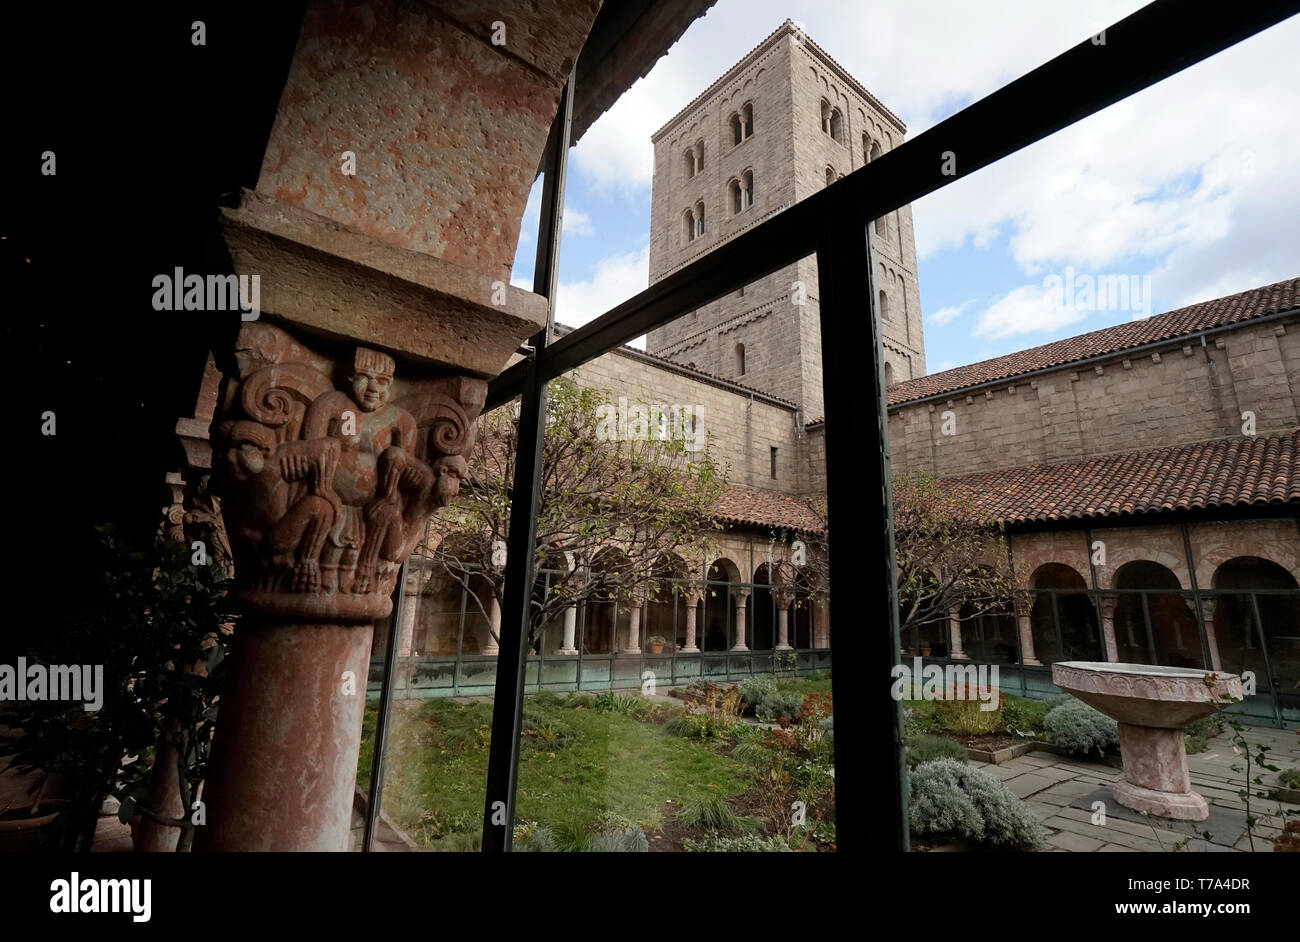 The Judy Black Garden with tower at the Cuxa Cloister.the Cloister museum.Metropolitan Museum of Art. New York City.USA - Stock Image